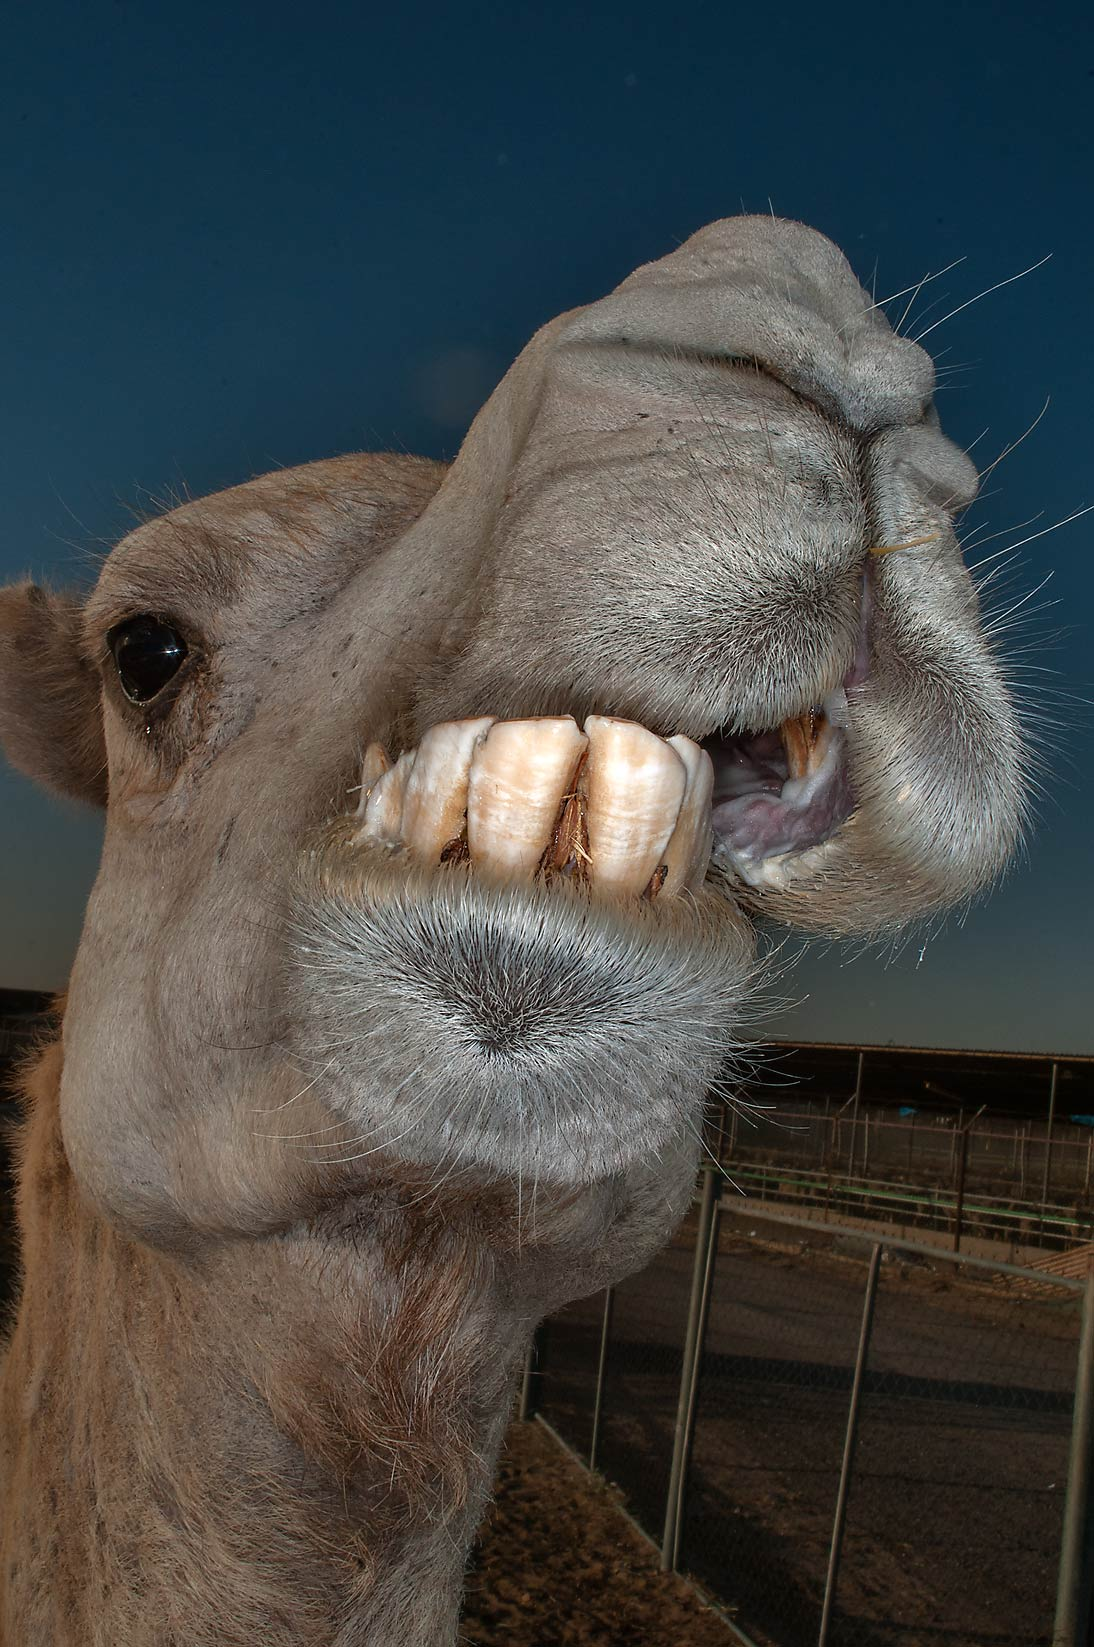 Chewing camel showing its teeth in Livestock Market, Abu Hamour area. Doha, Qatar